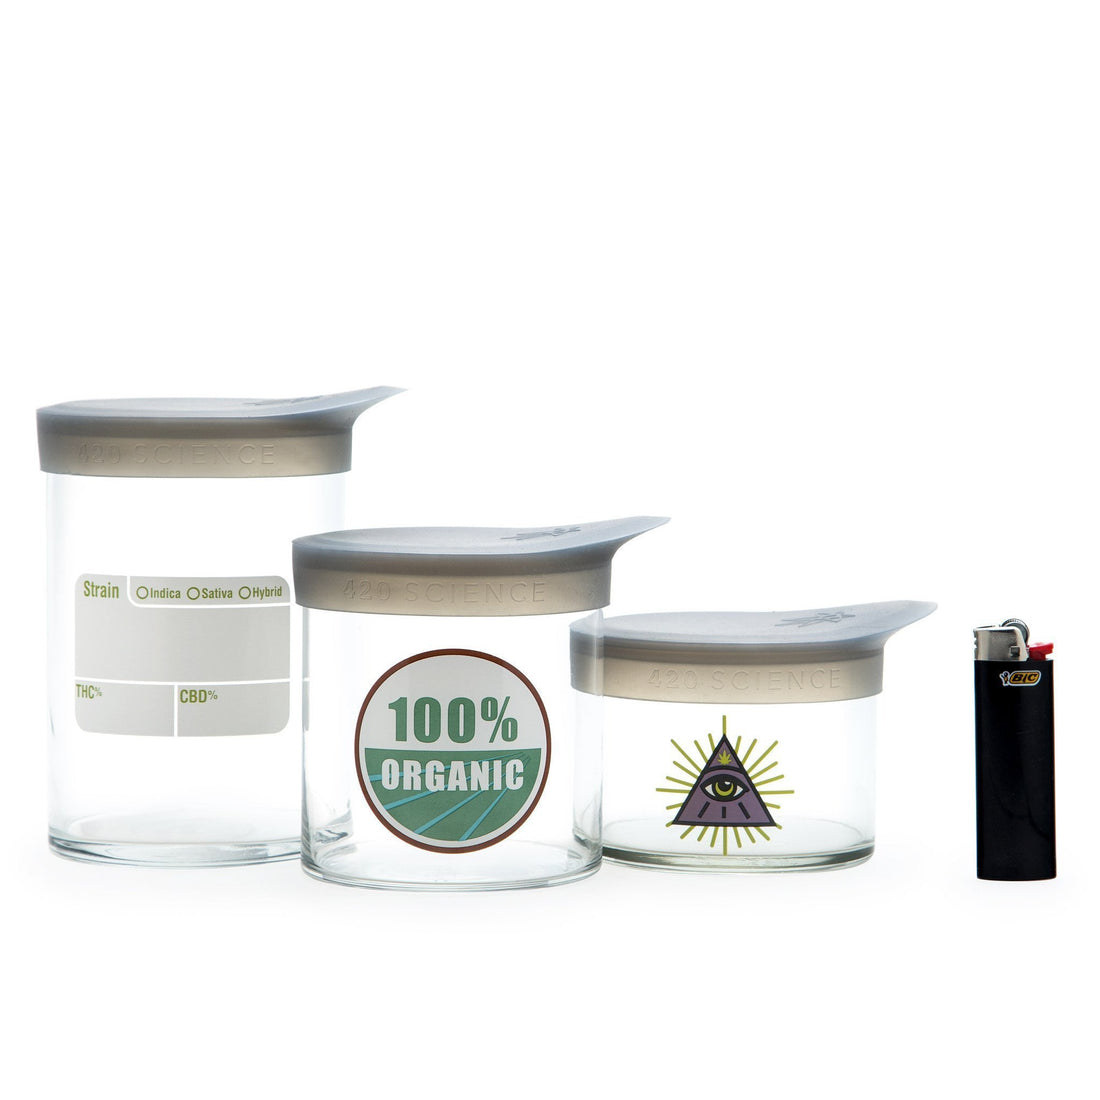 Medium Wide-Mouth - Shroom Vision - 420 Science - The most trusted online smoke shop.